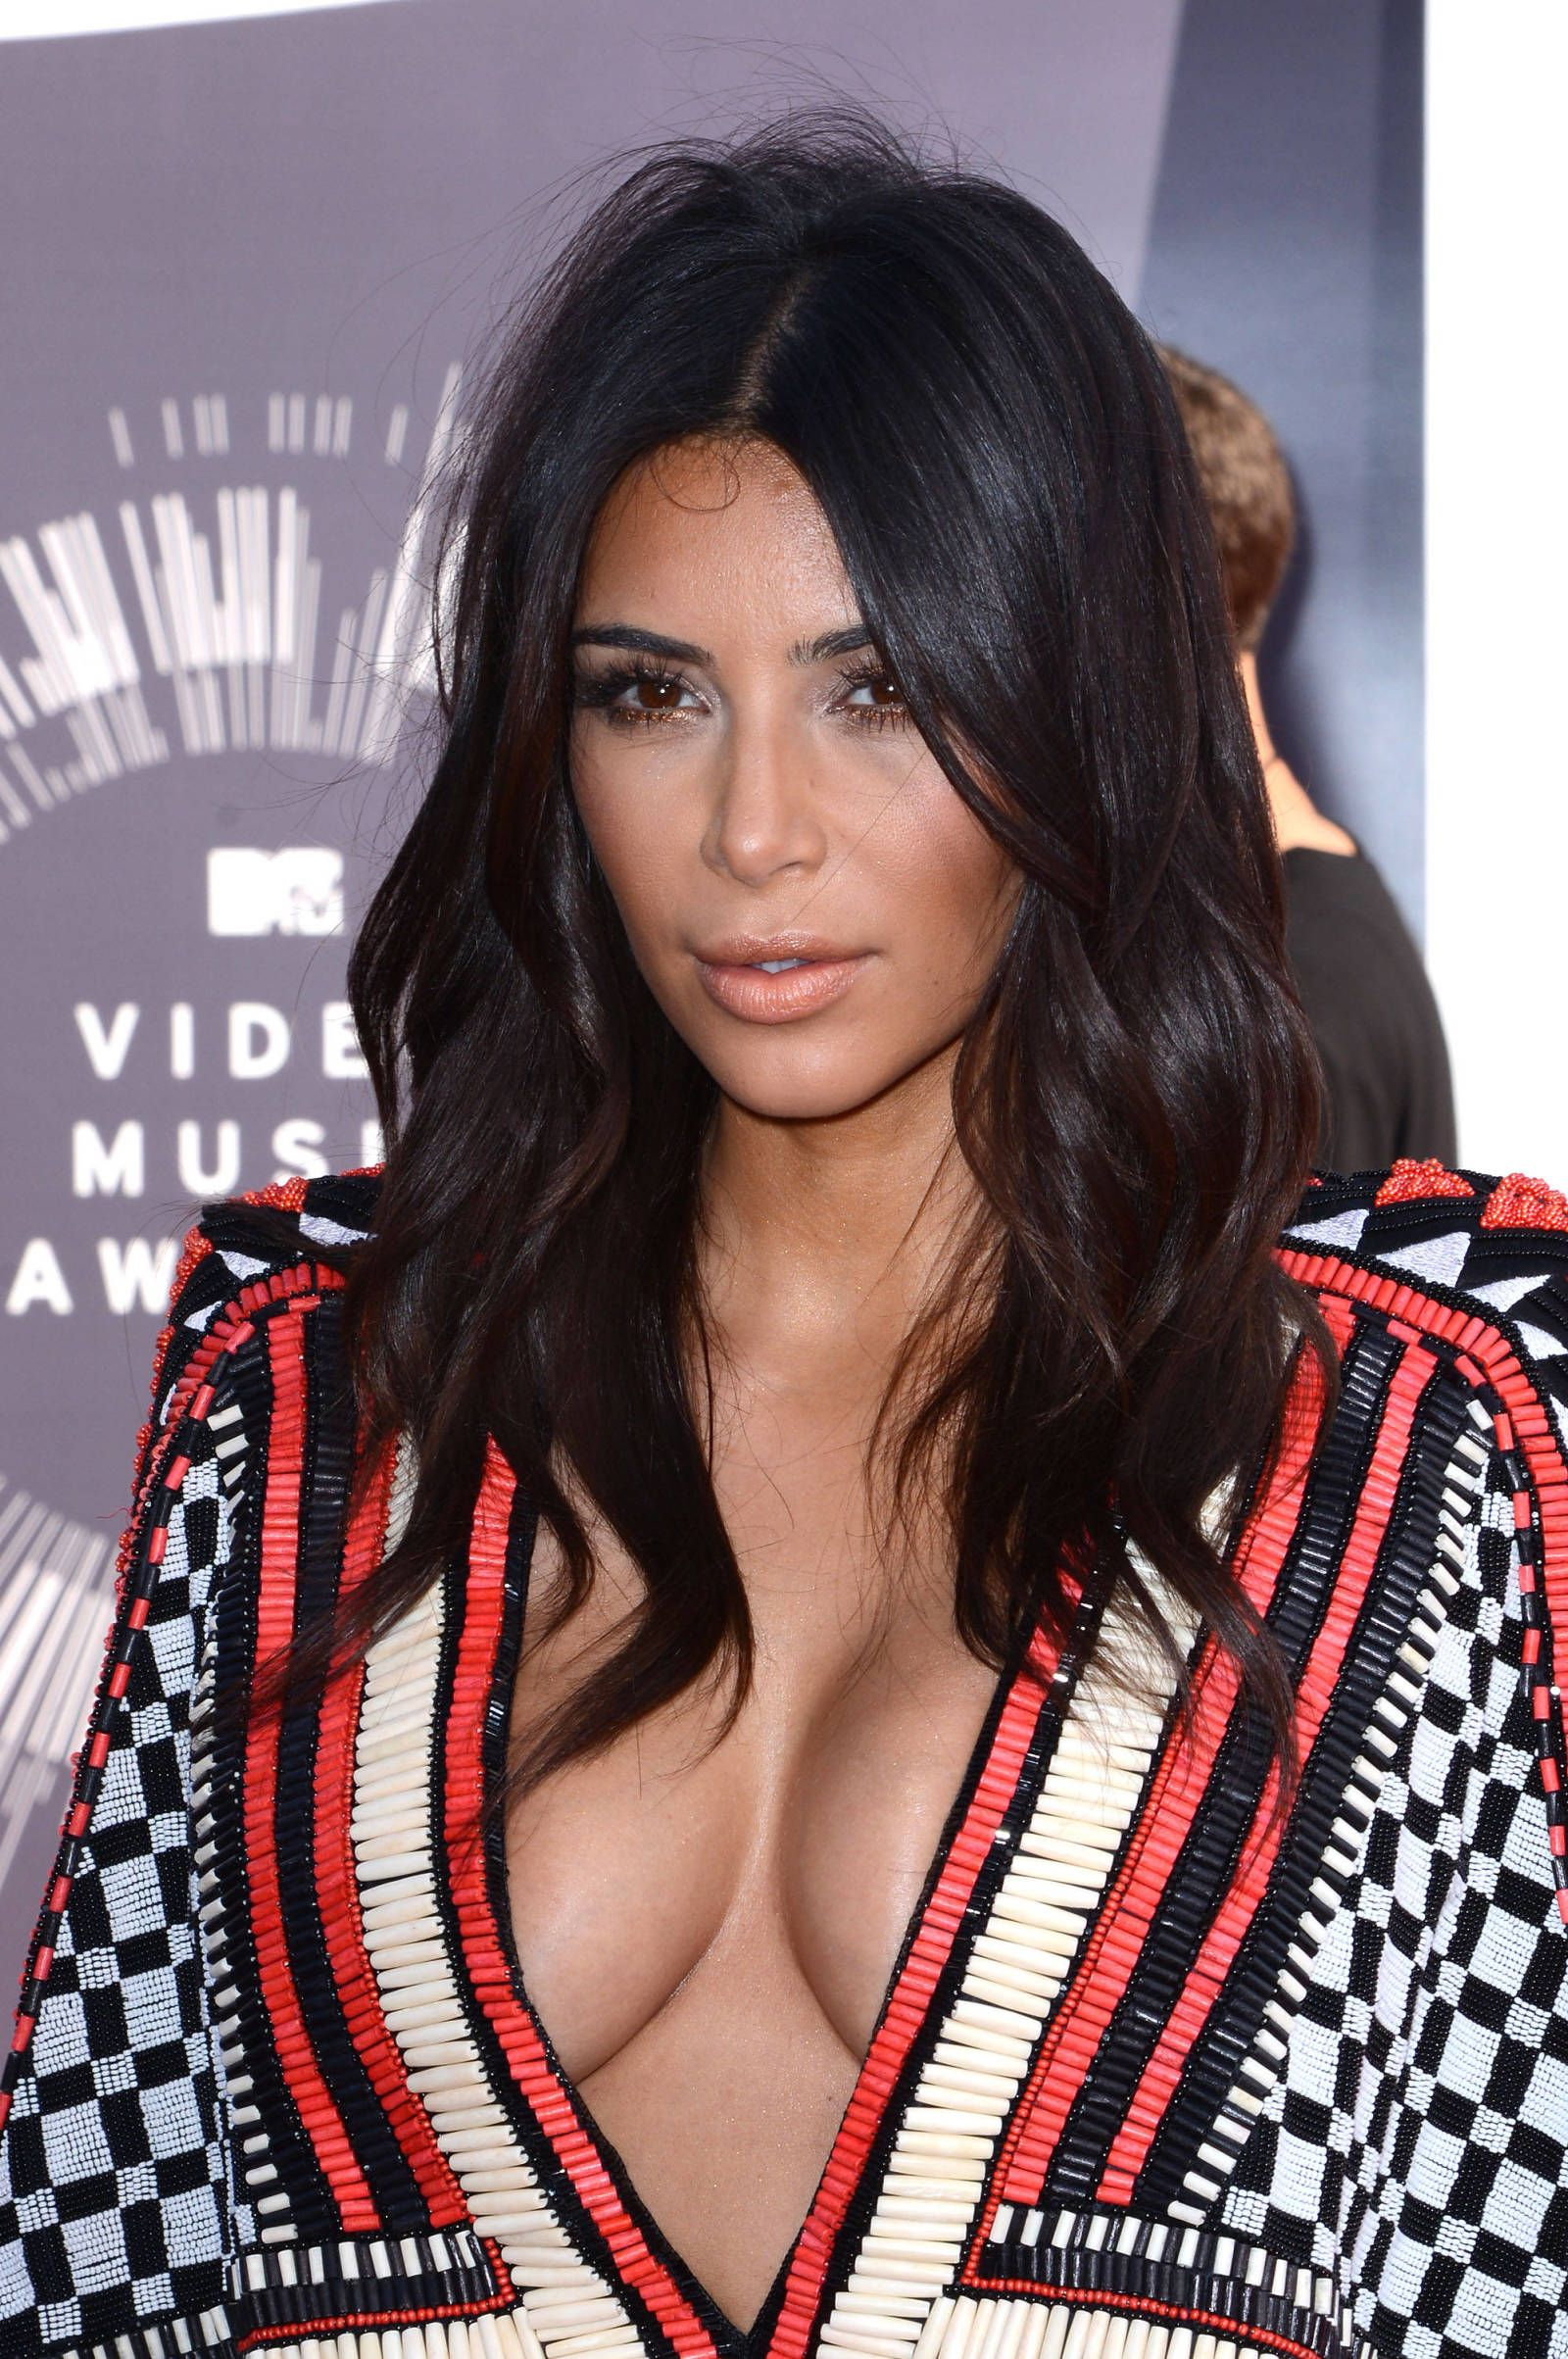 Do women show cleavage on purpose